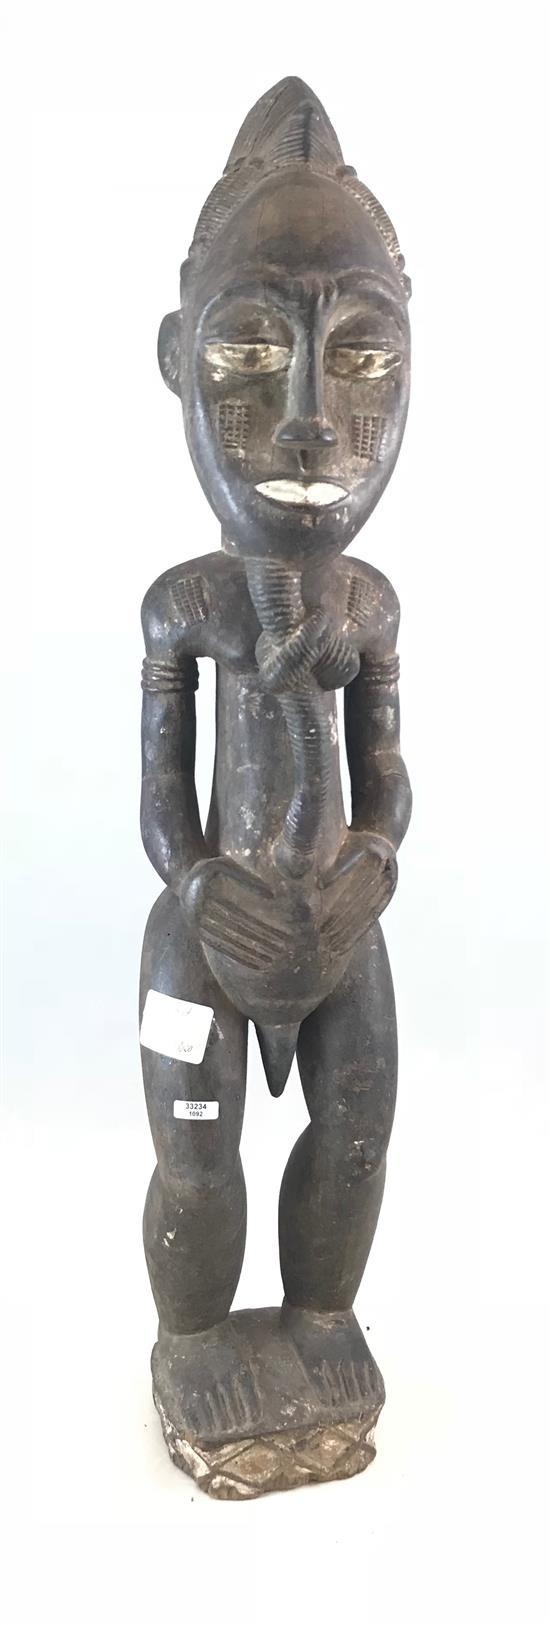 AFRICAN WOODEN STATUE, BAULE MALE FIGURE, WITH A LONG KNOT BEARD, FROM THE IVORY COAST, POSSIBLY A PATERNITY FIGURE. 30